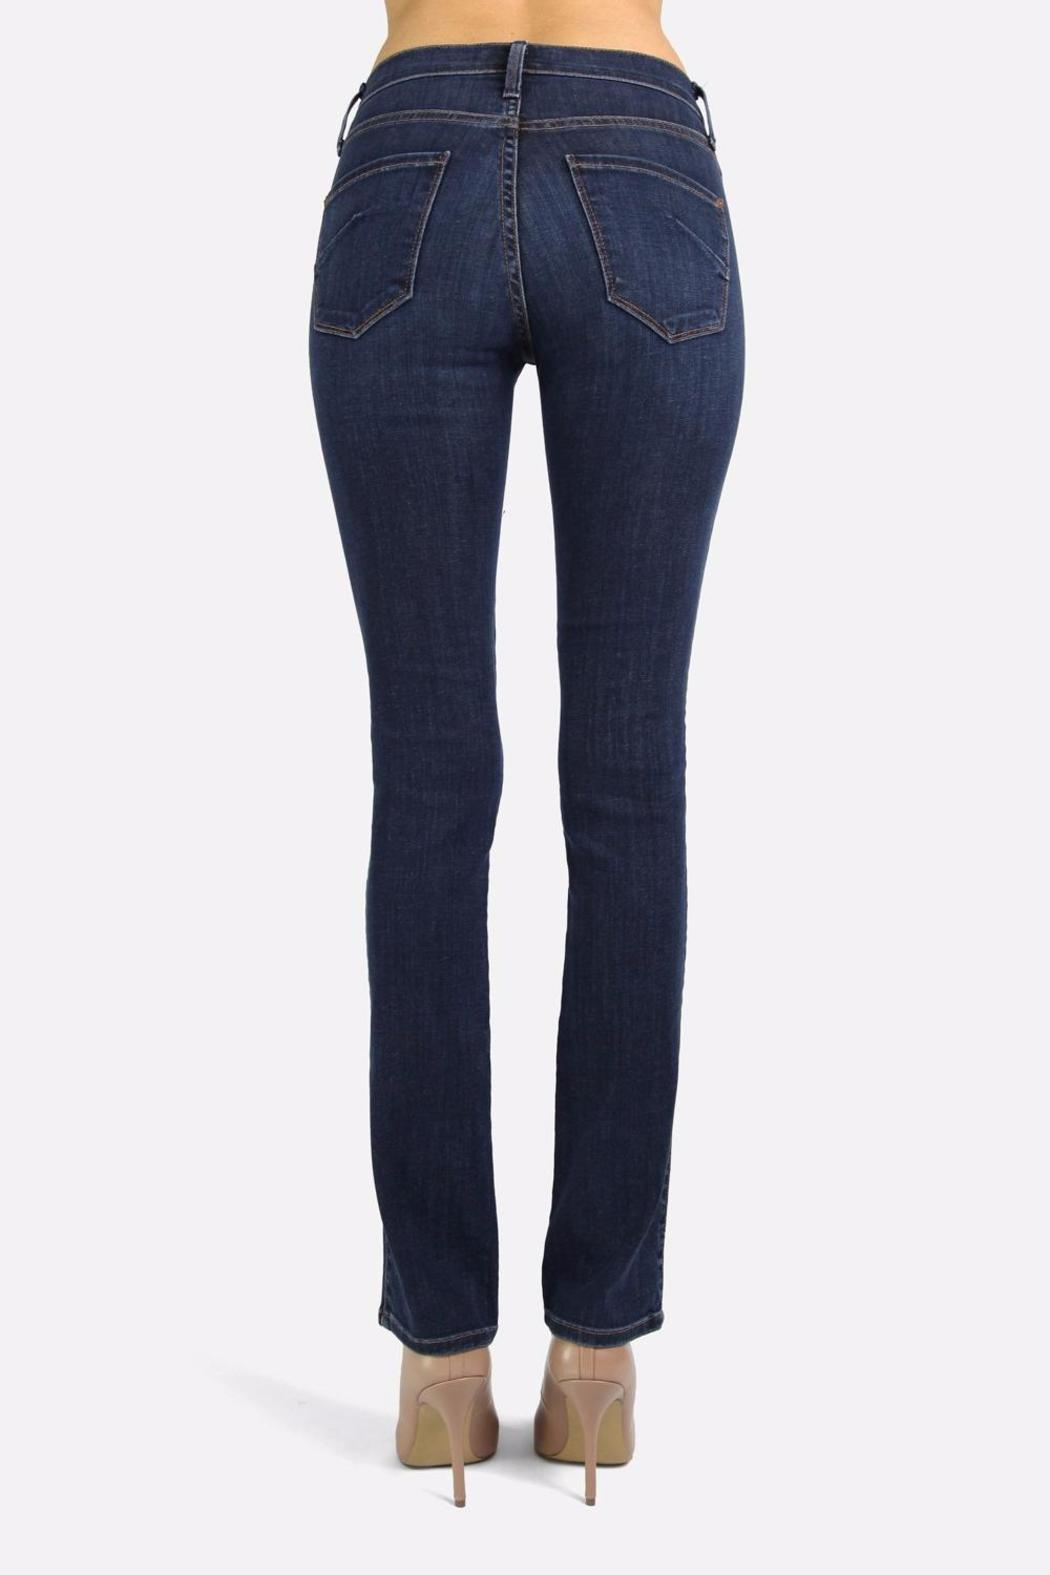 James Jeans Straight Blue Jean - Side Cropped Image